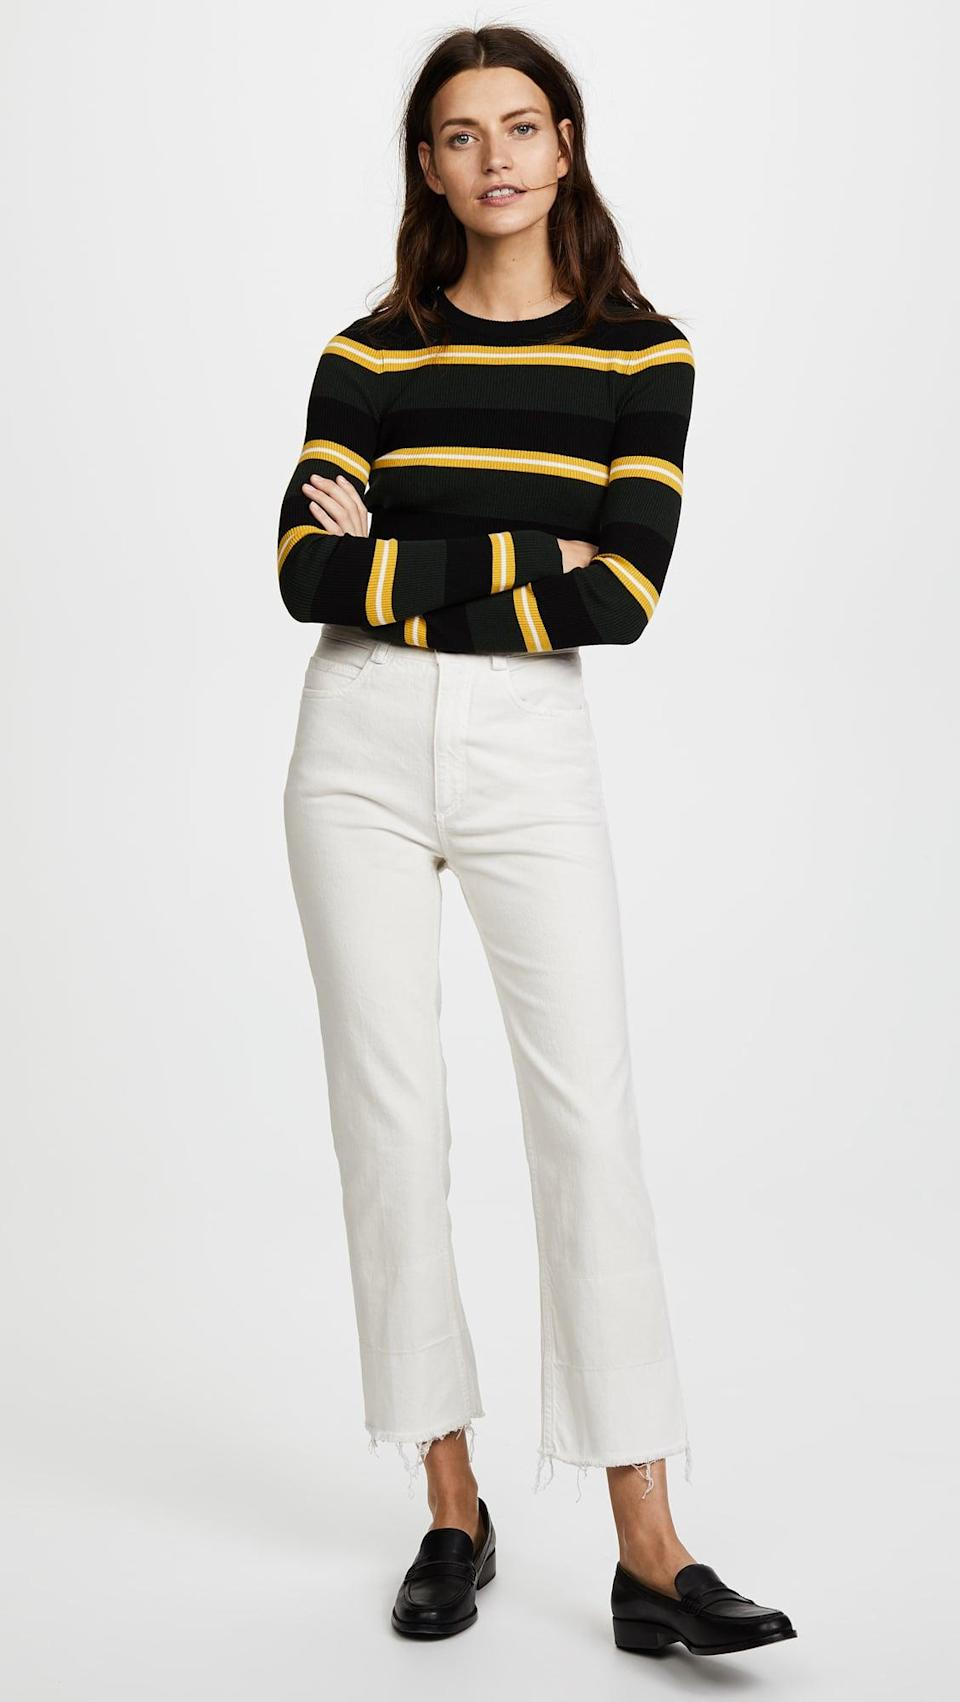 """<p>""""I may not reach for my <span>Rachel Comey Slim Legion Jeans</span> ($345) as often as my more classic styles, but they're hands down the most comfortable (and forgiving!) jeans in my closet. The non-restricting straight-leg cut certainly helps, but it's actually the insane softness of the denim I love most. When I first slipped into them, I couldn't believe how soft and lightweight the fabric felt. You know your favorite sweatshirt that gets softer with each wash? That's what these jeans feel like."""" - Stephanie Nguyen, Native Editor, Style</p>"""